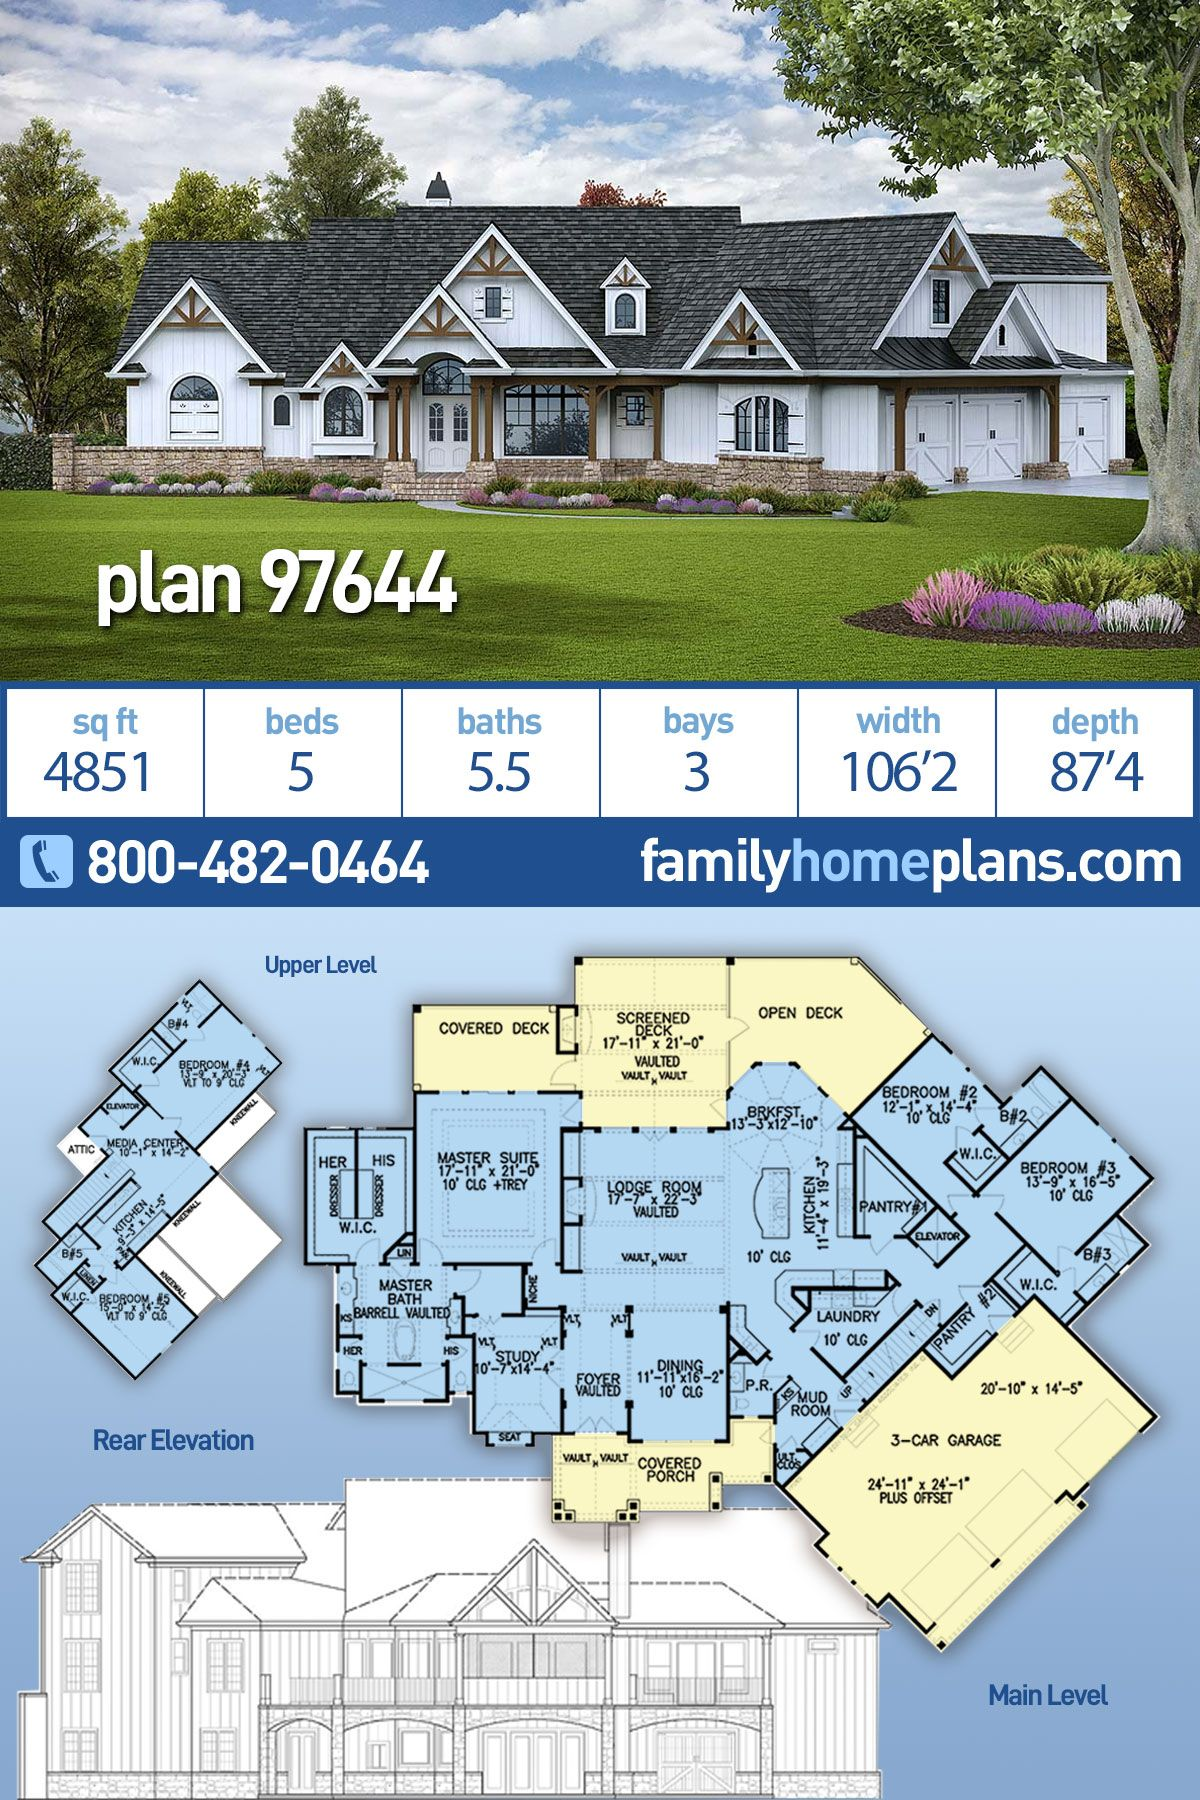 Southern Style House Plan 97644 With 5 Bed 6 Bath 3 Car Garage Family House Plans Country Style House Plans Craftsman House Plans